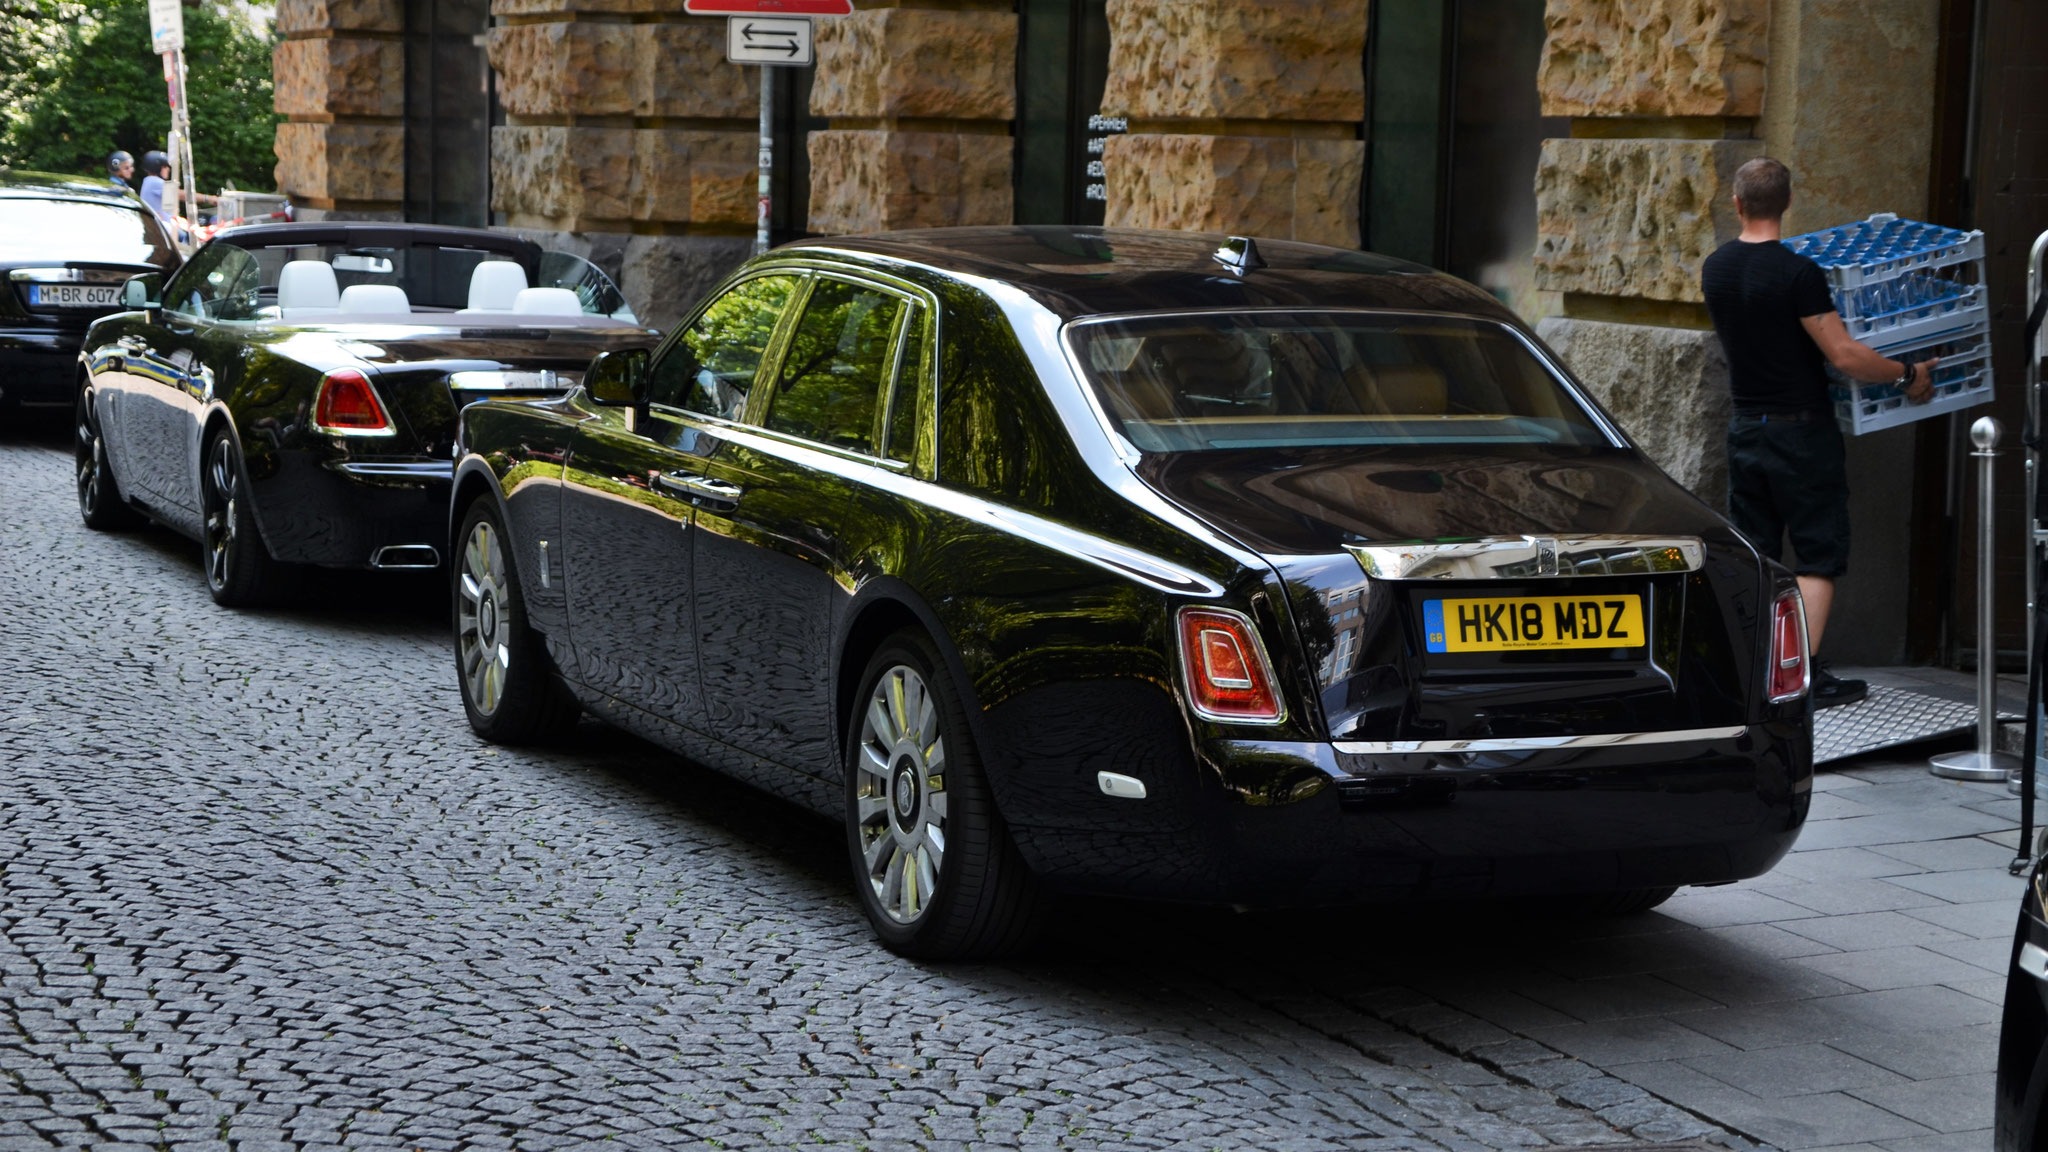 Rolls Royce Phantom - HK18-MDZ (GB)